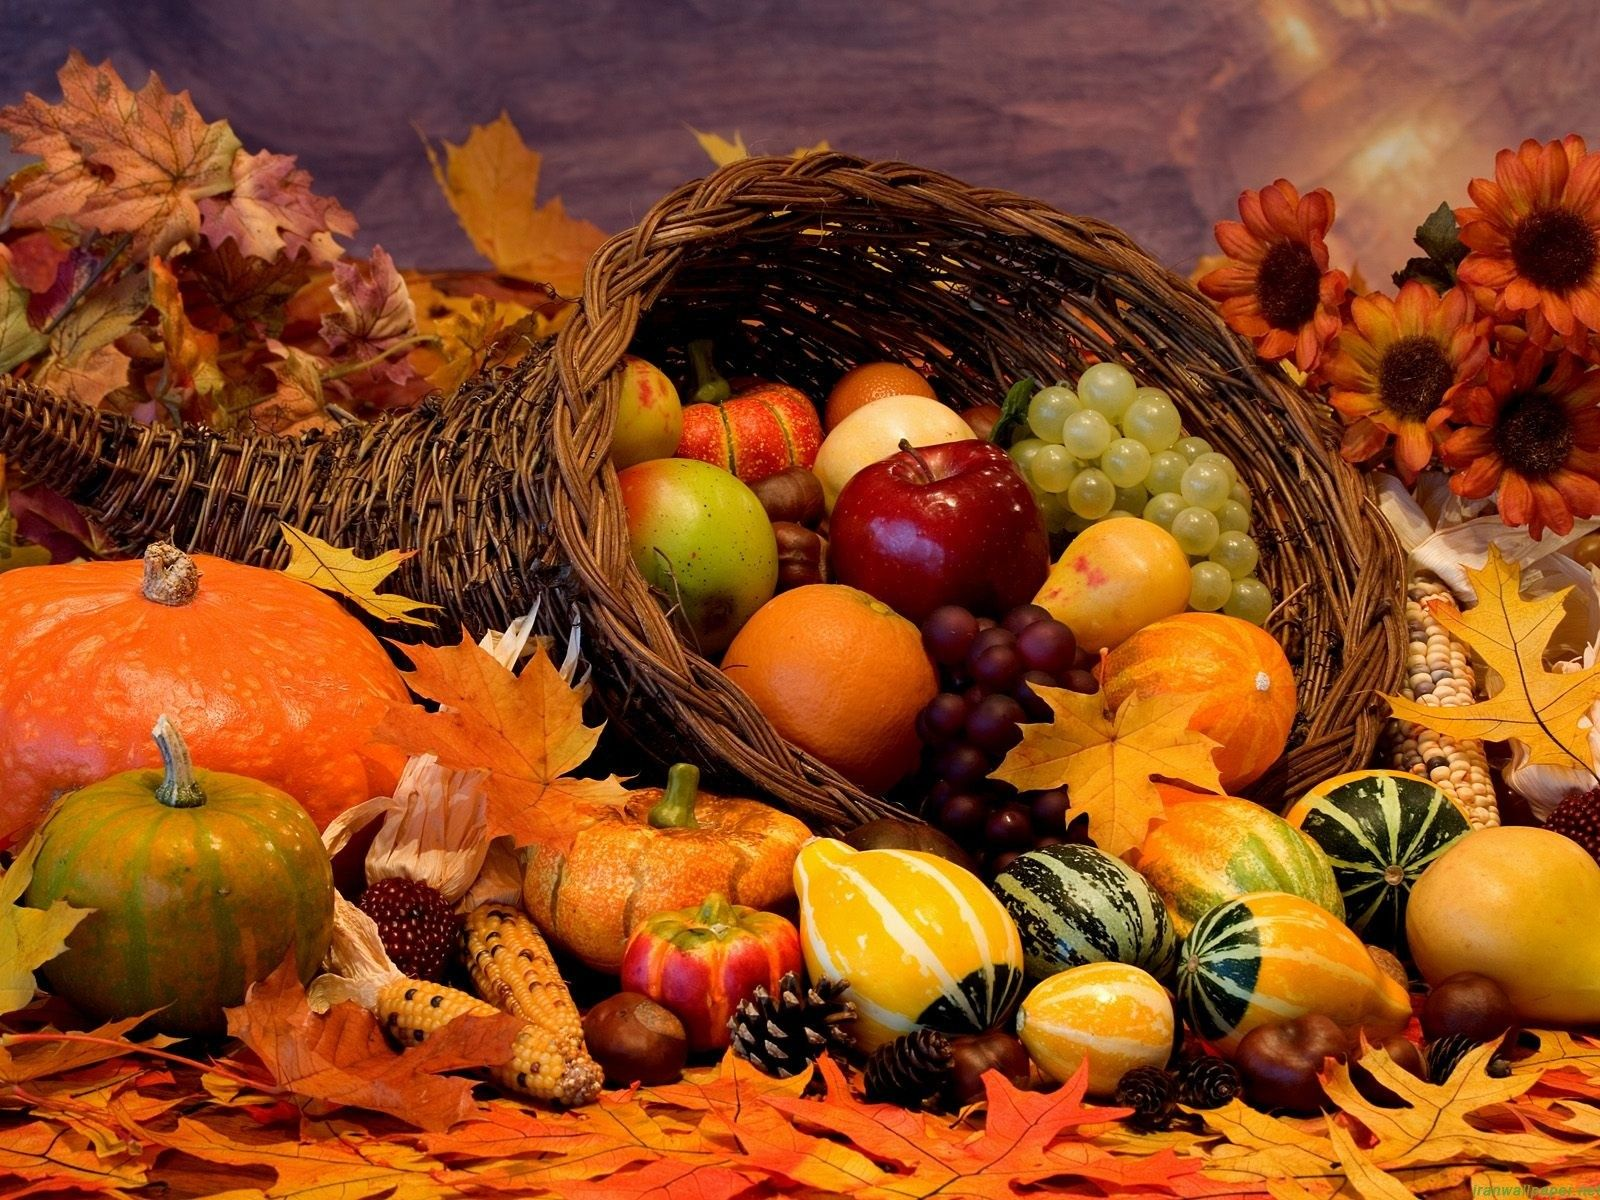 definition thanksgiving theme wallpaper - photo #5